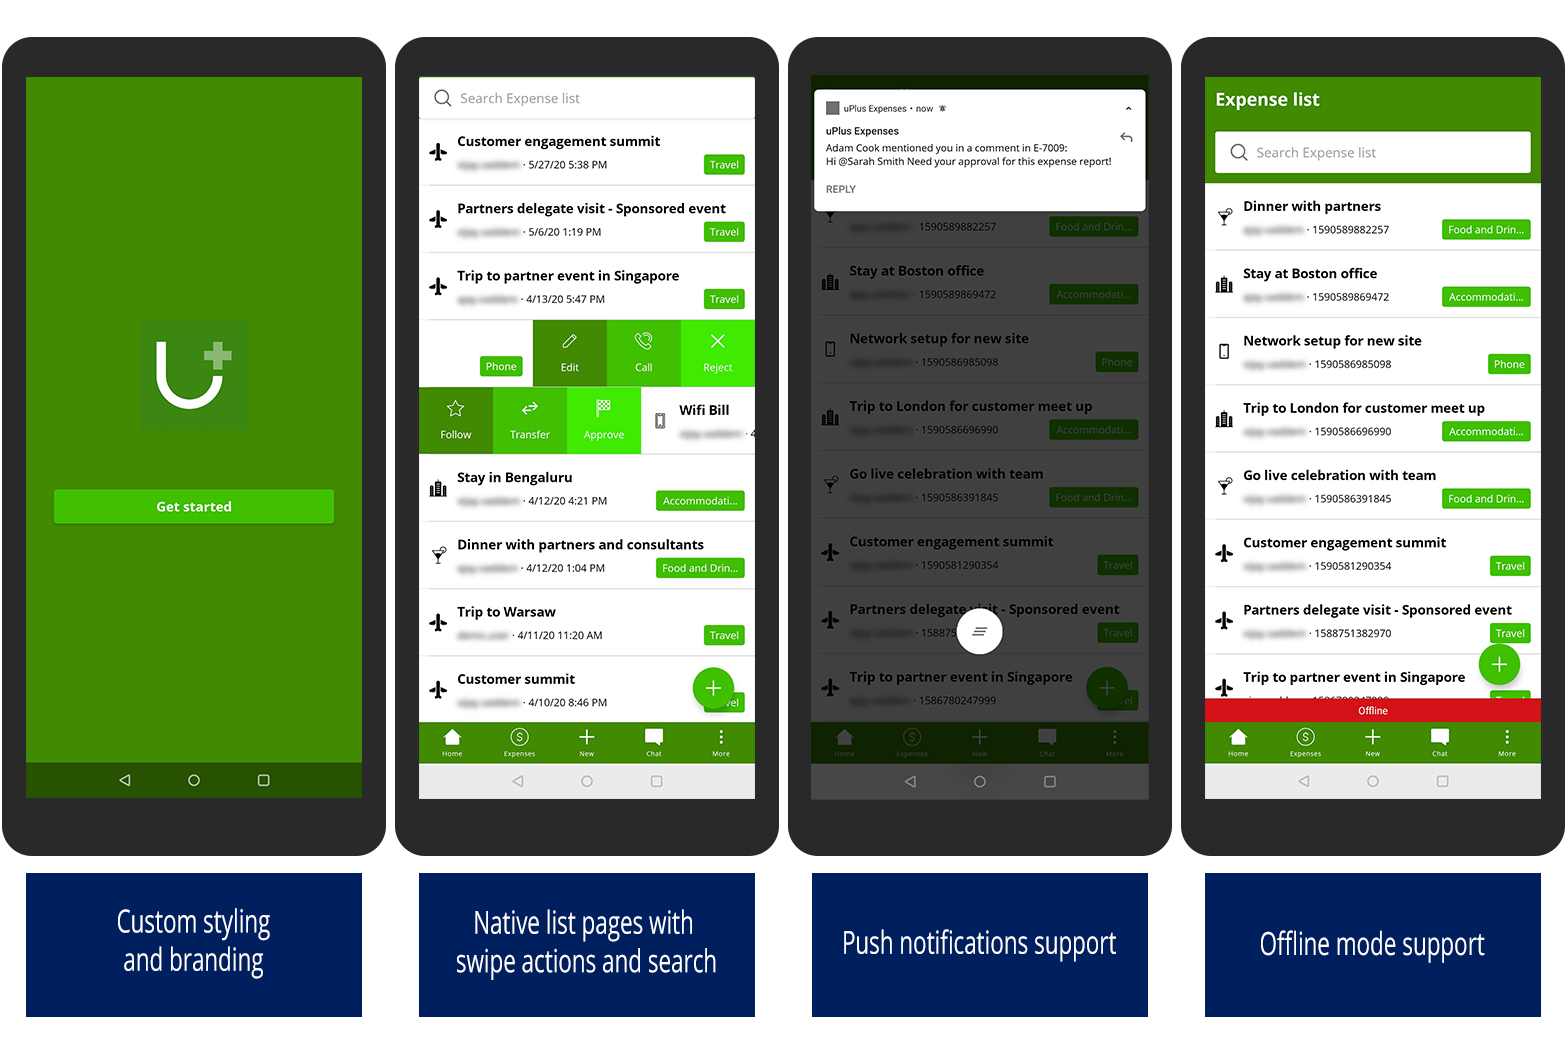 Overview of mobile features with custom styling, push notifications, offline                     mode, and native list pages with swipe actions.